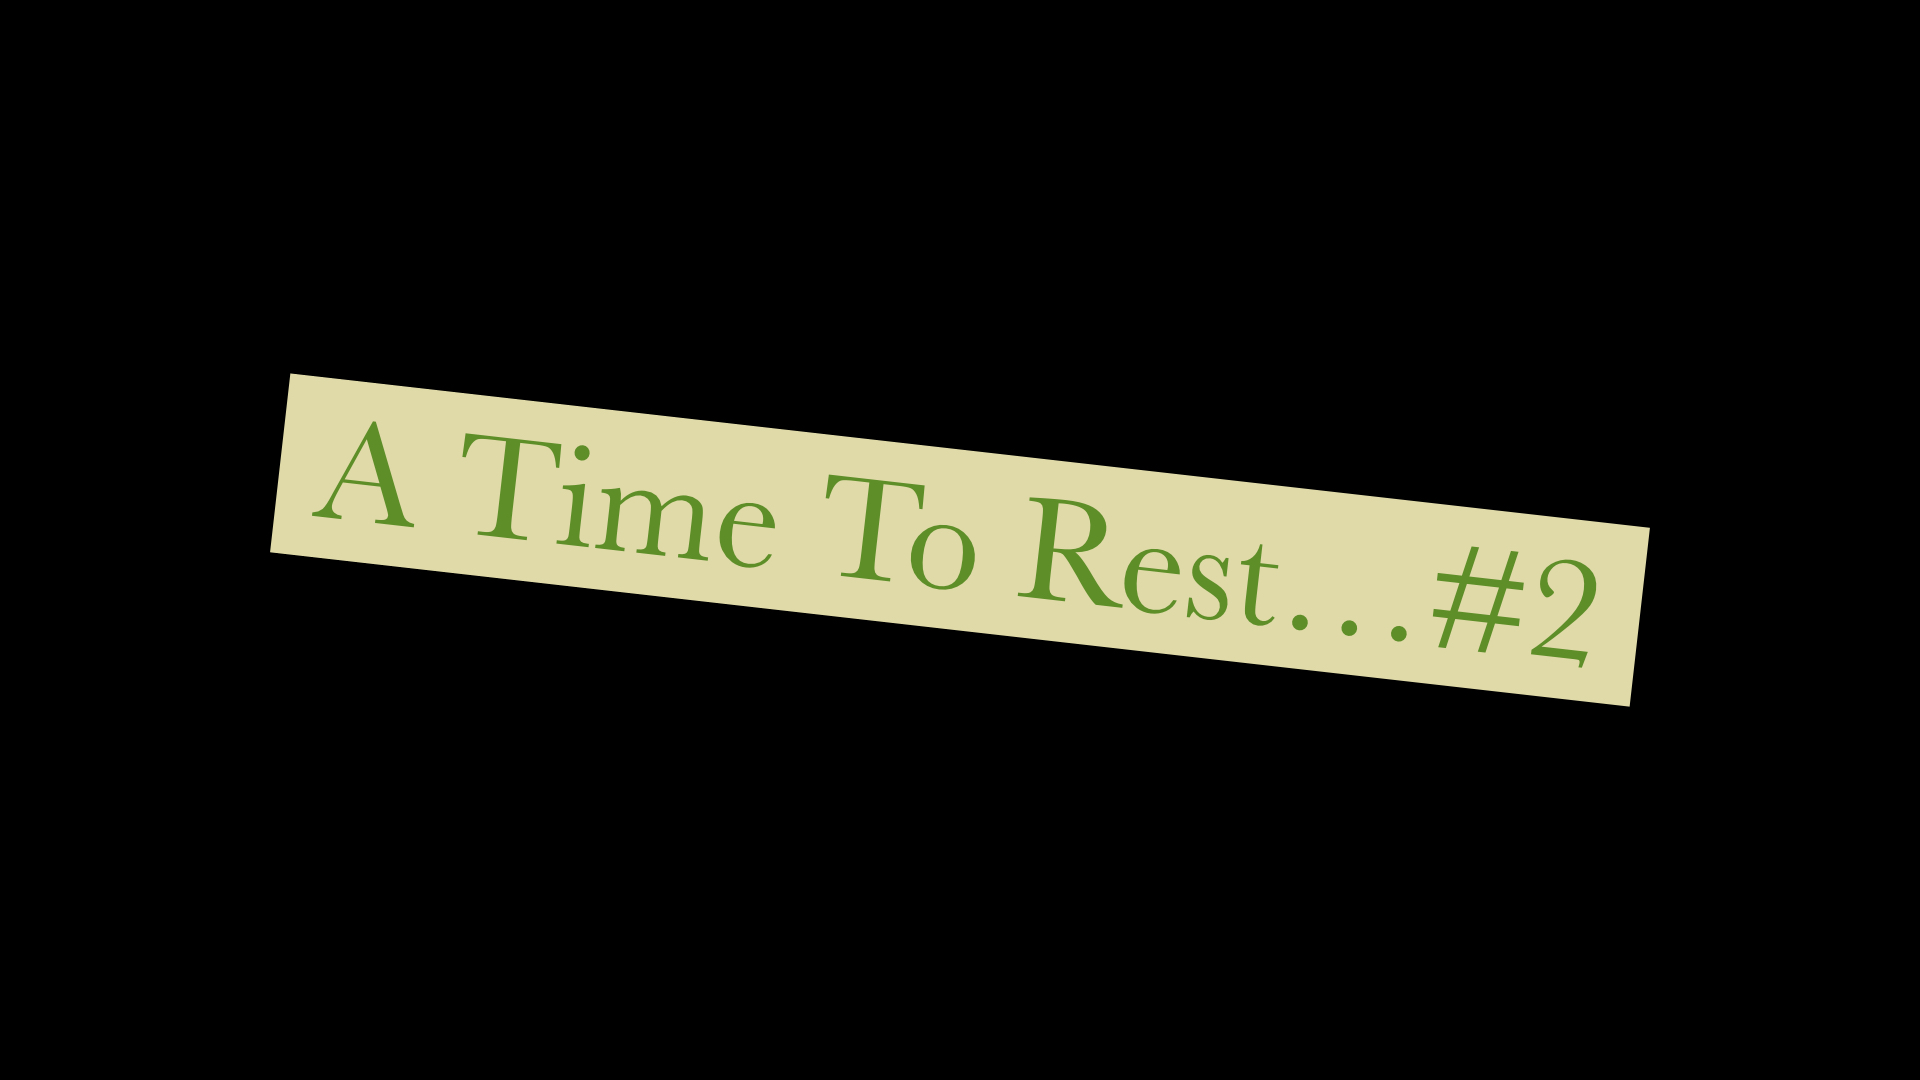 A Time To Rest 2 8142019 50246 PM